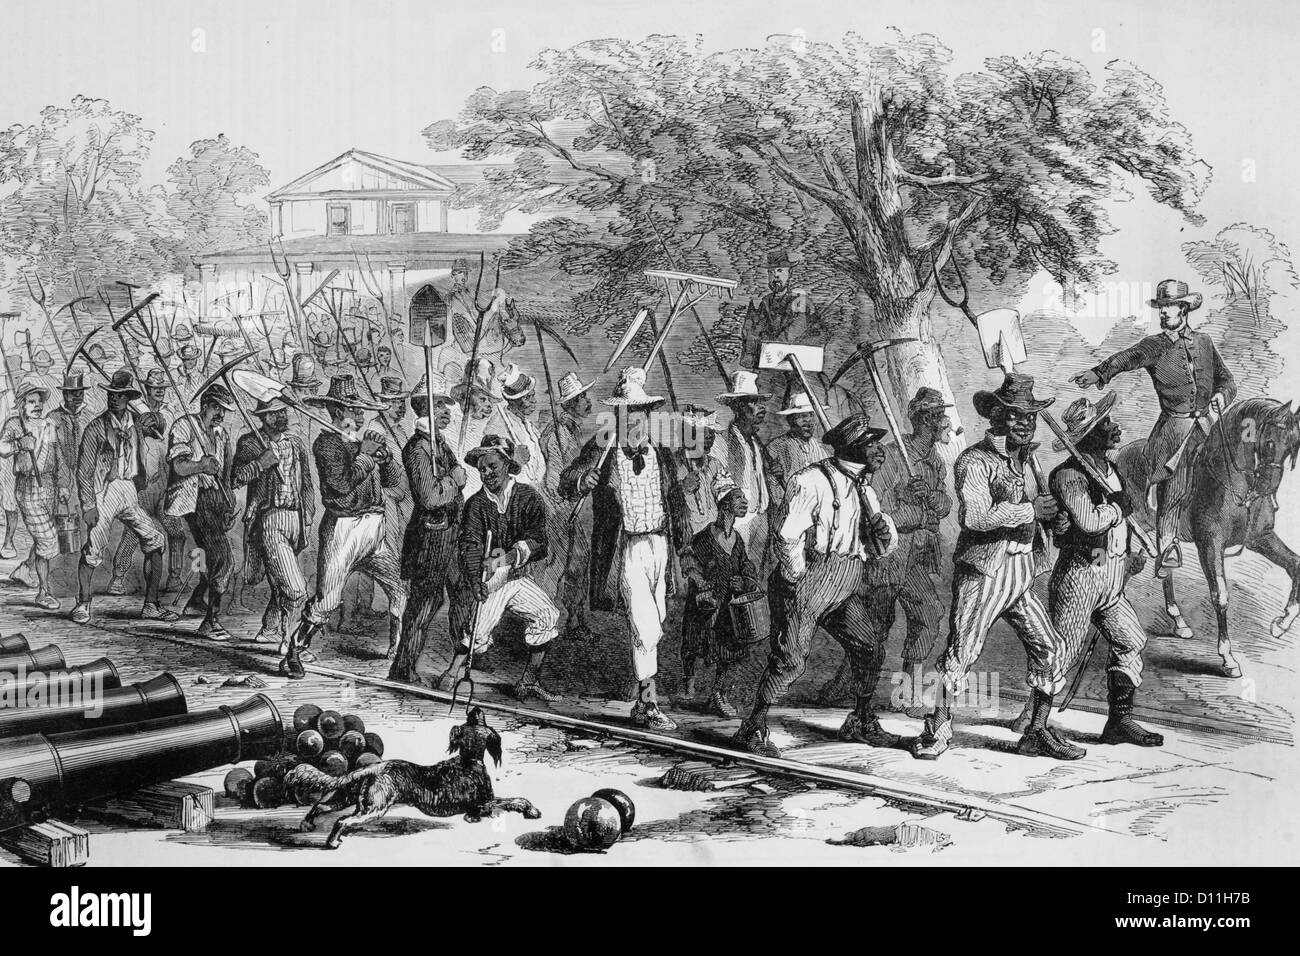 1860s ILLUSTRATION CIVIL WAR MORNING MUSTERING CONTRABAND AFRICAN AMERICAN WORKERS DAY LABORERS AT FORTRESS MONROE - Stock Image